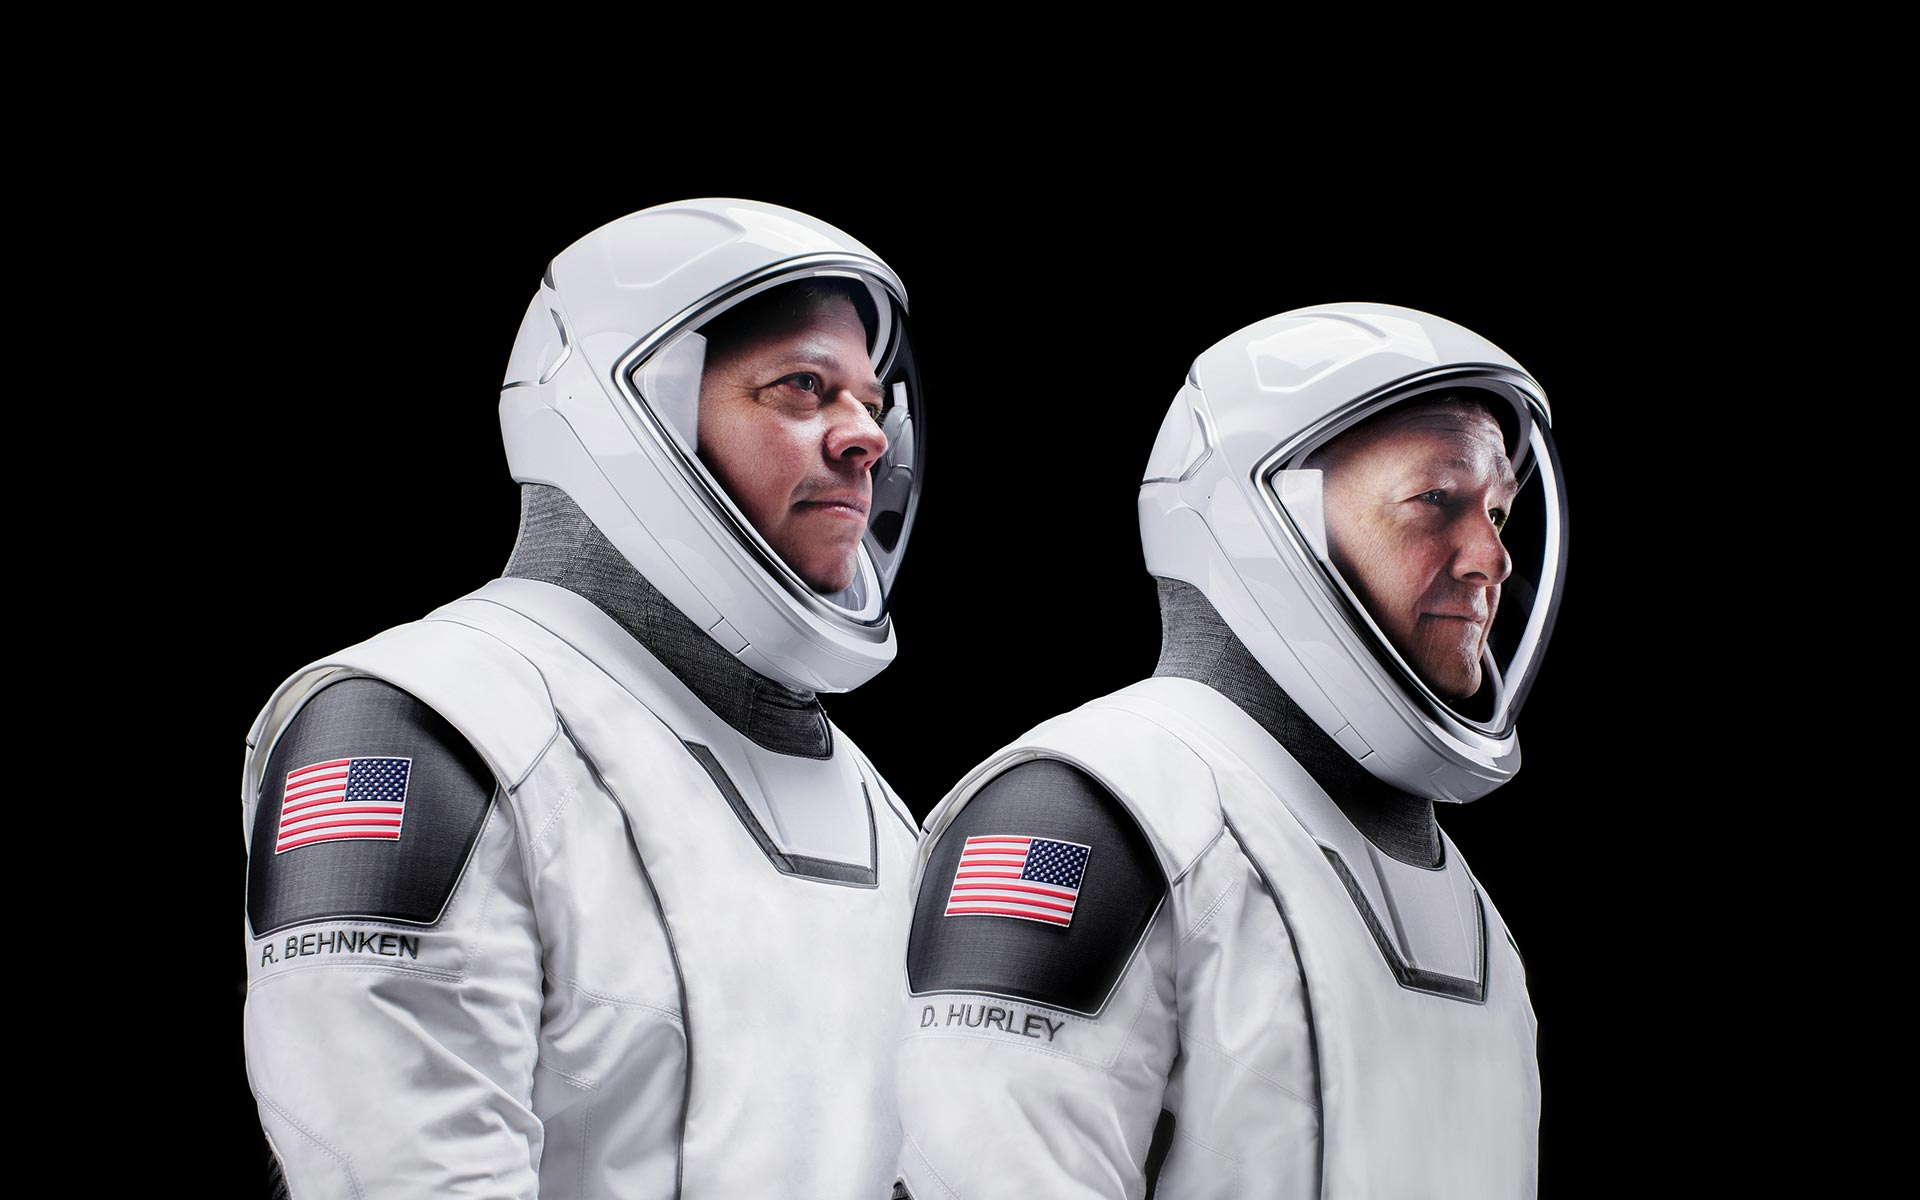 NASA and SpaceX are 'GO' to Proceed for Launch of First Astronauts ...